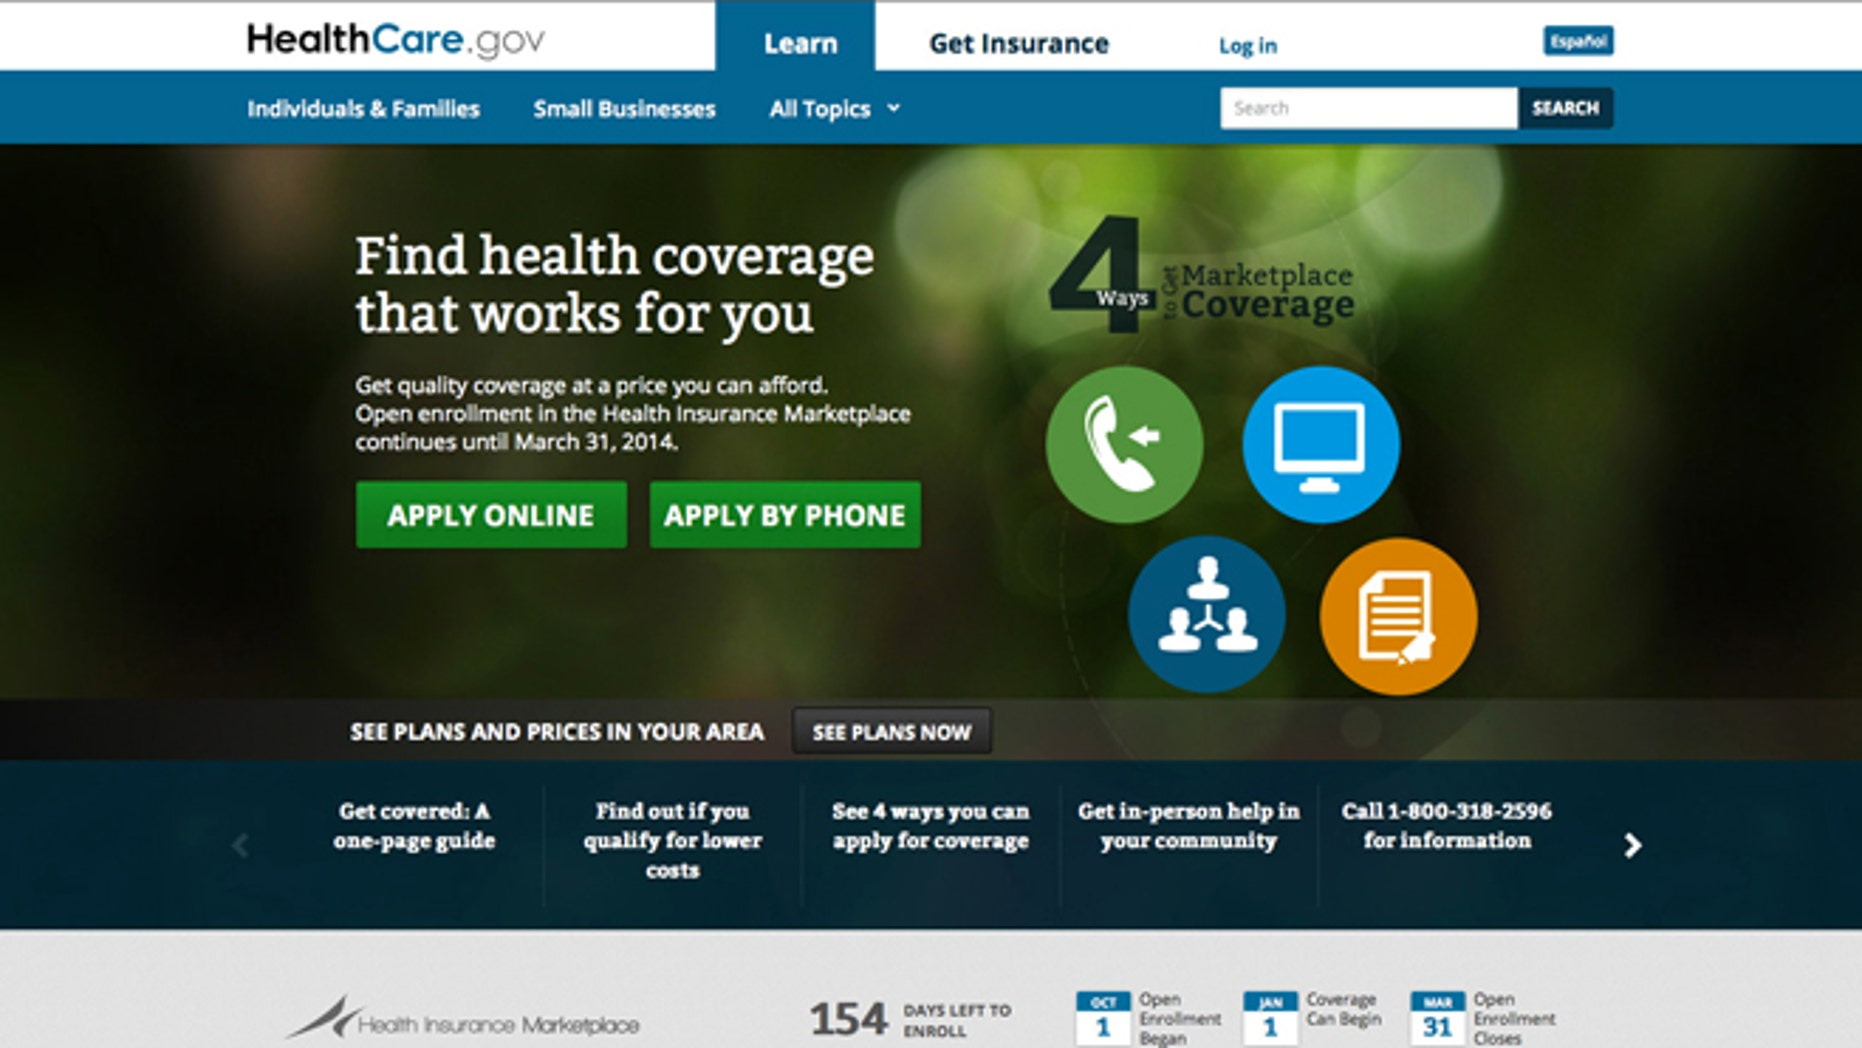 Main landing web page for HealthCare.gov.